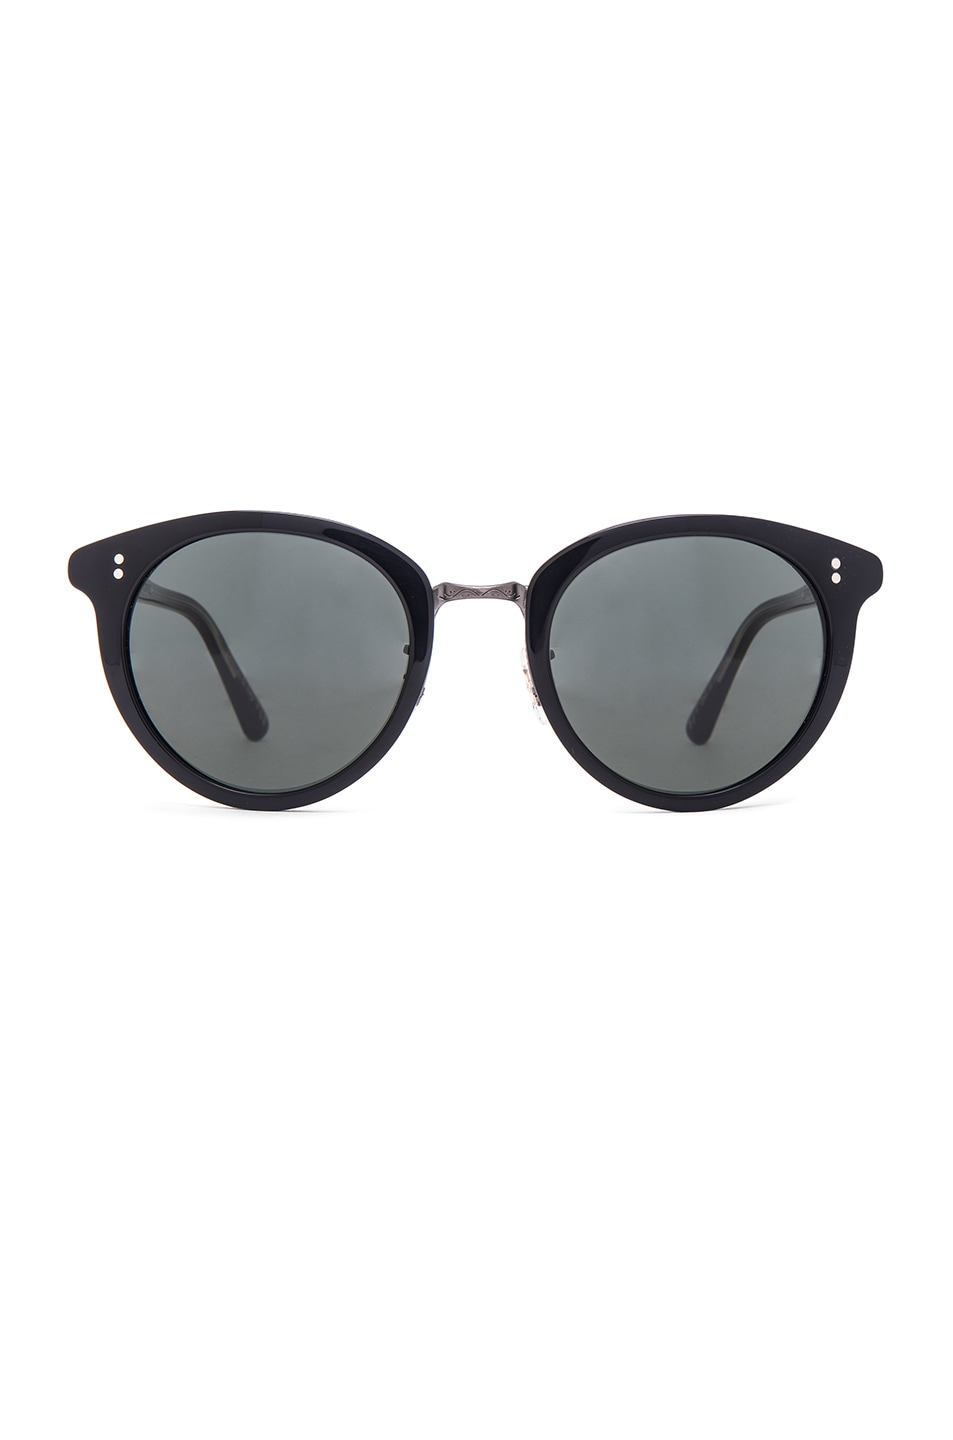 Image 1 of Oliver Peoples Spelman Sunglasses in Black